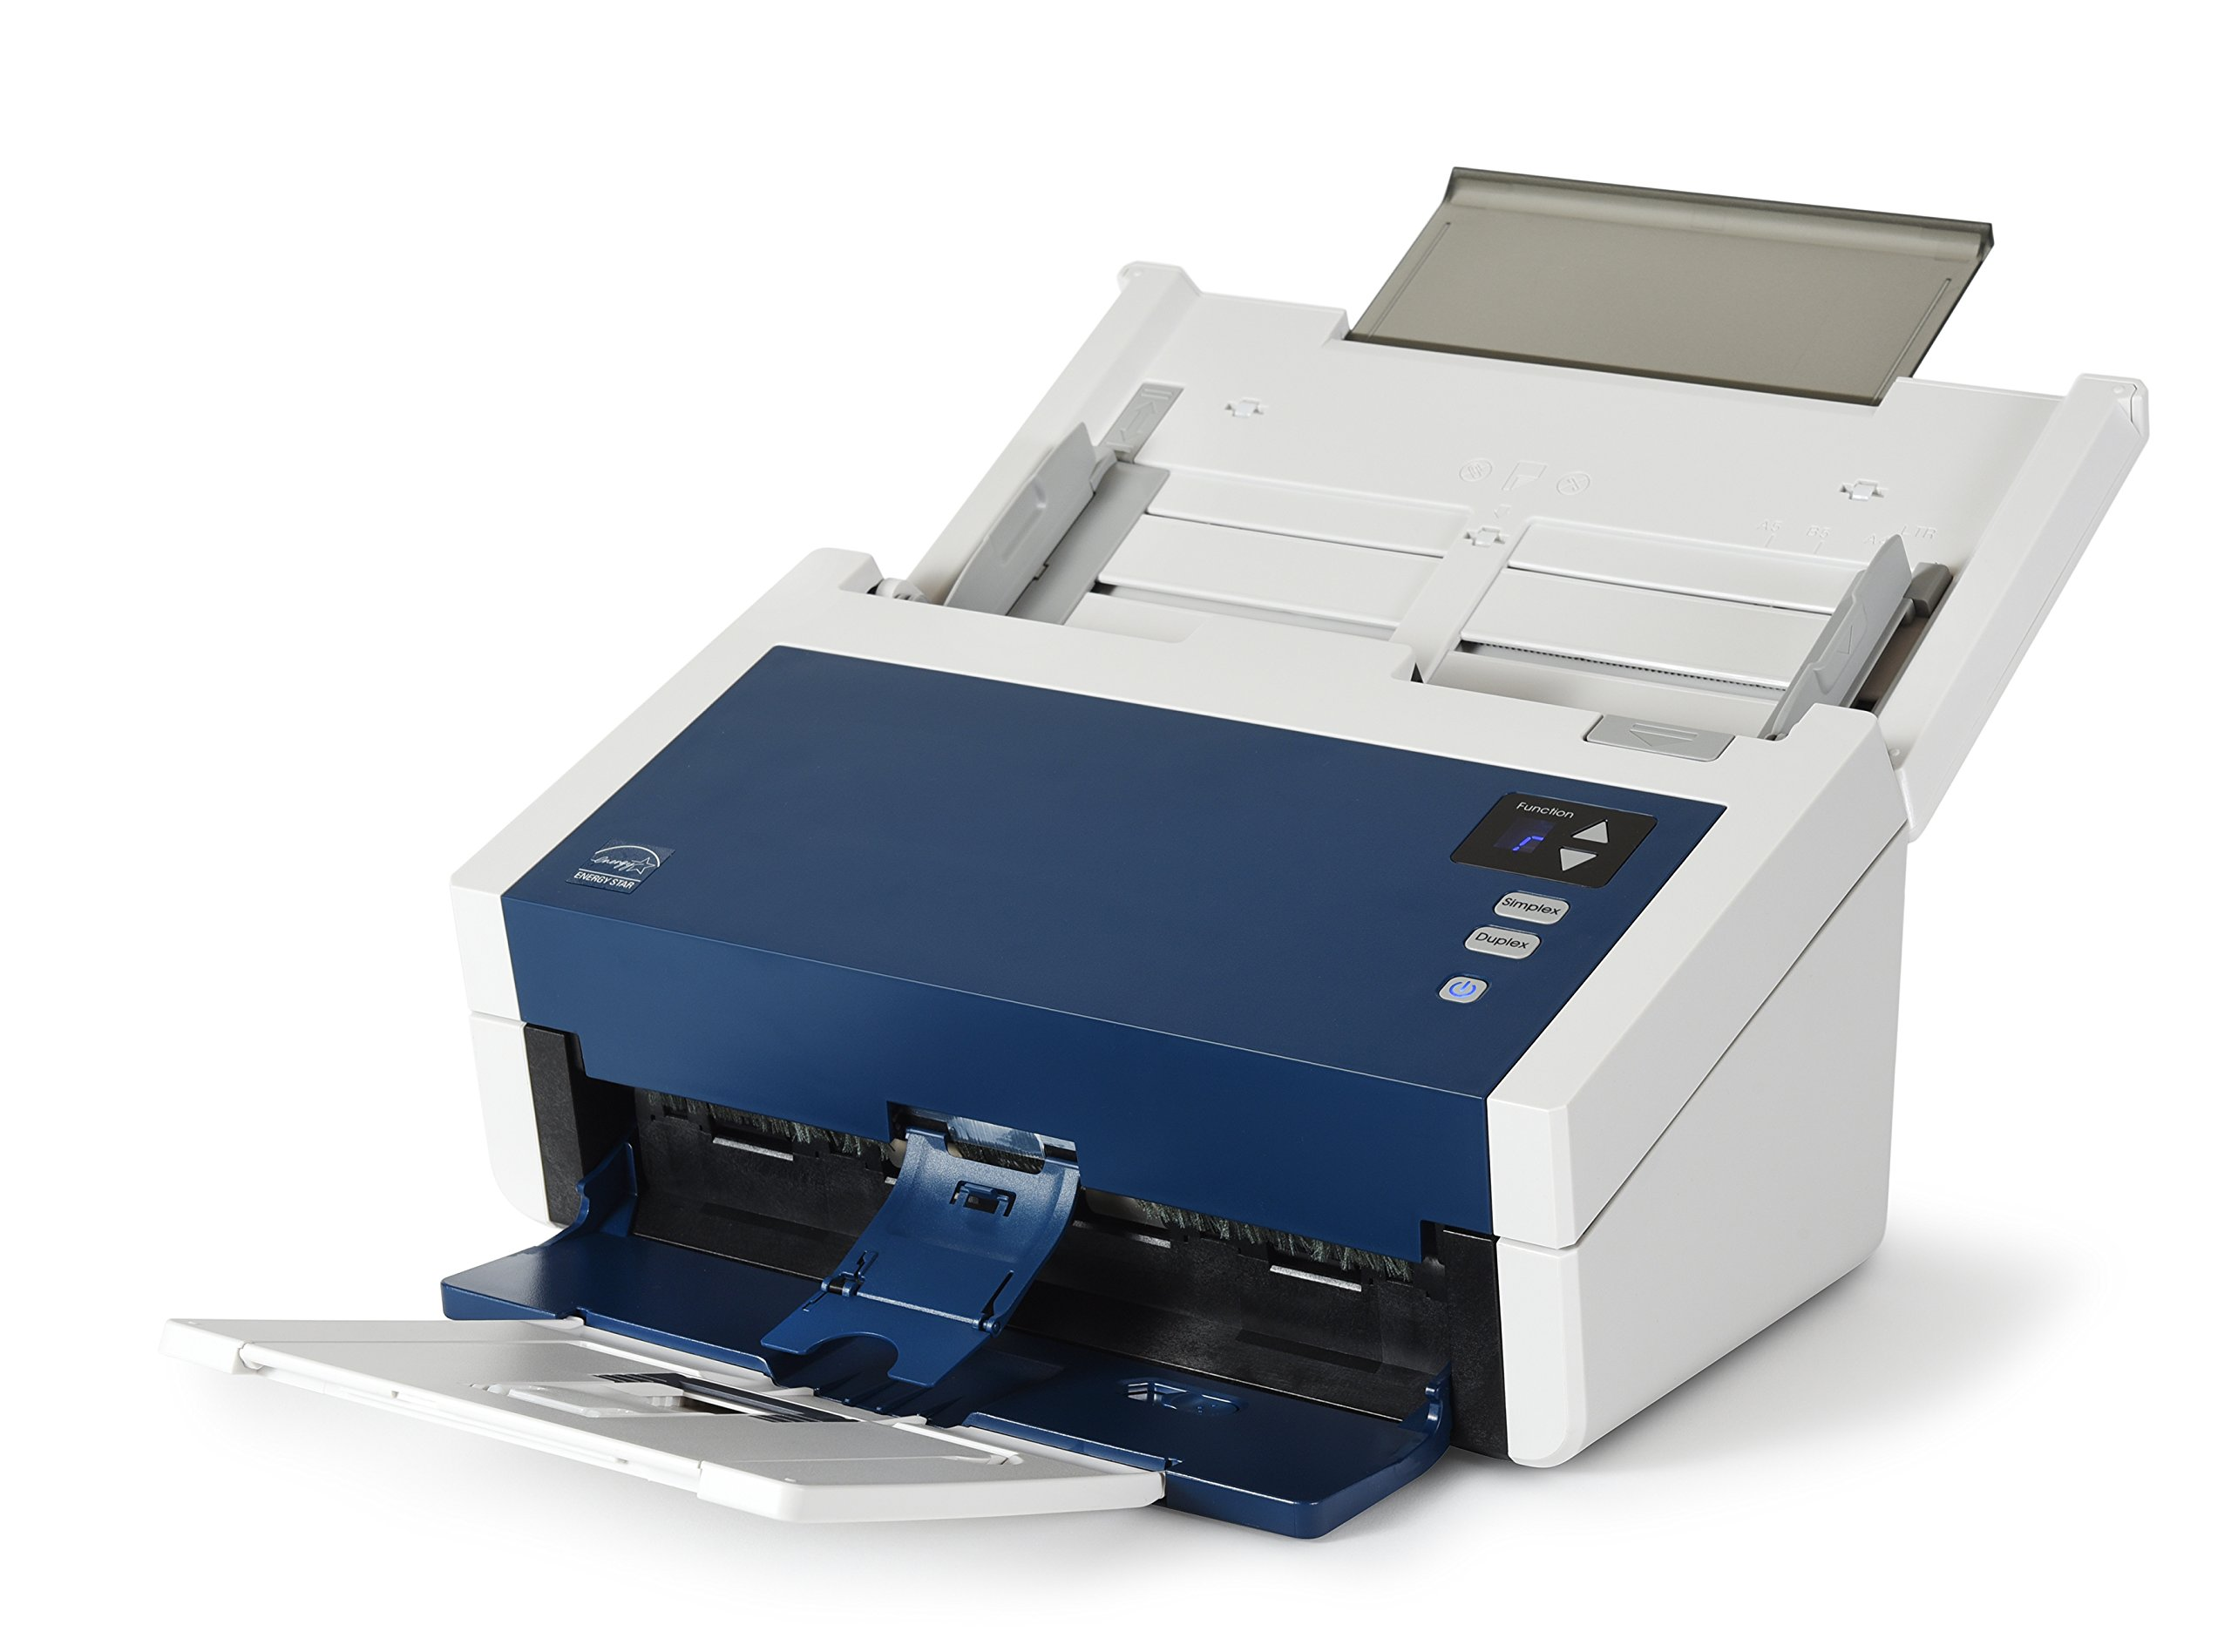 Xerox XDM6440-U DOCUMATE 6440 60 PPM DUPLEX COLOR ADF SCANNER